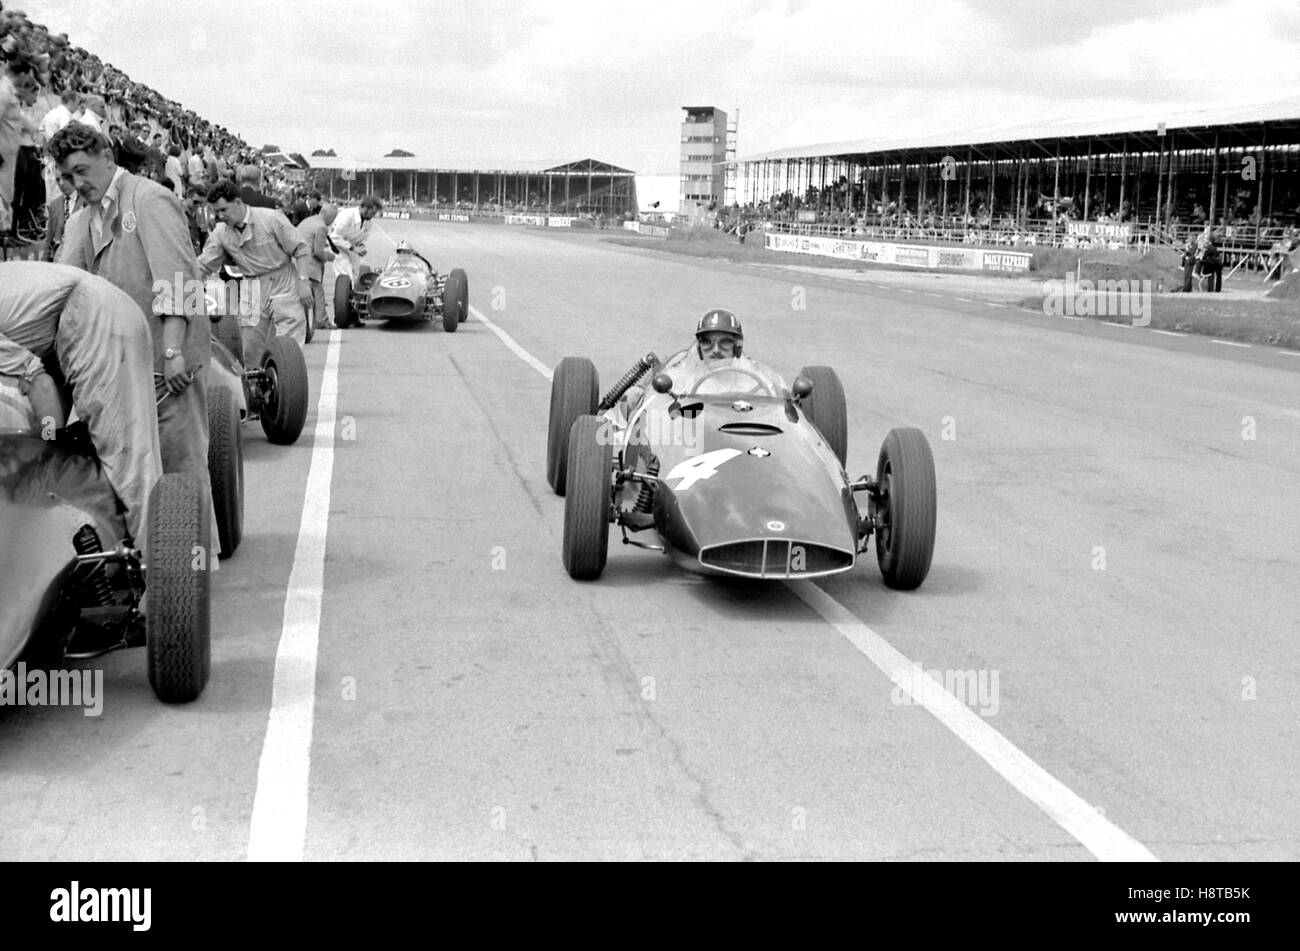 1960 MAY SILVERSTONE GRAHAM HILL BRM P48 ENTERS PITS - Stock Image